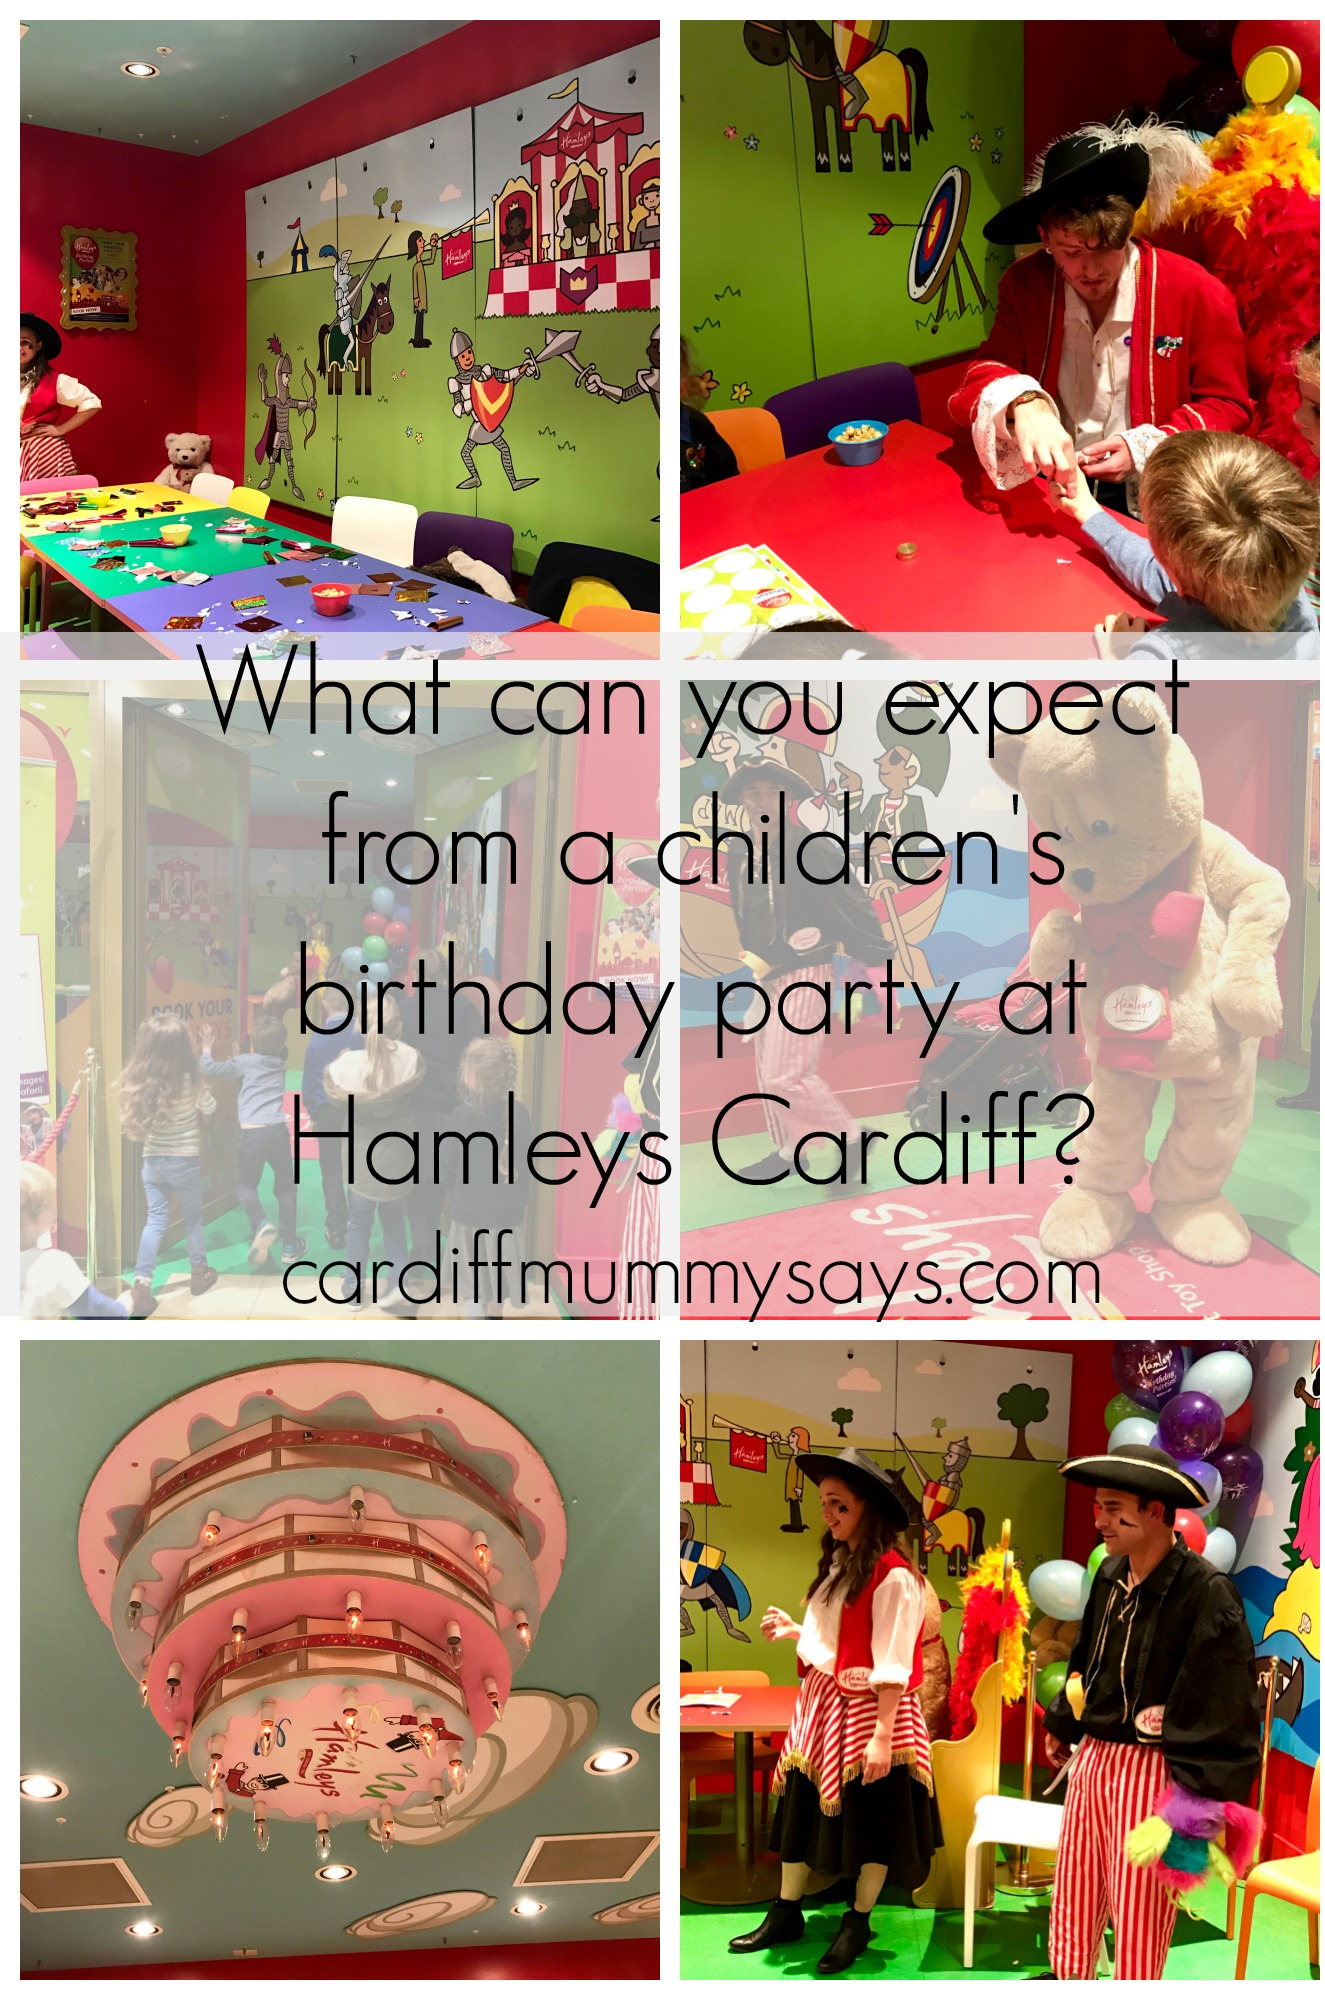 Hamleys Cardiff Birthday parties